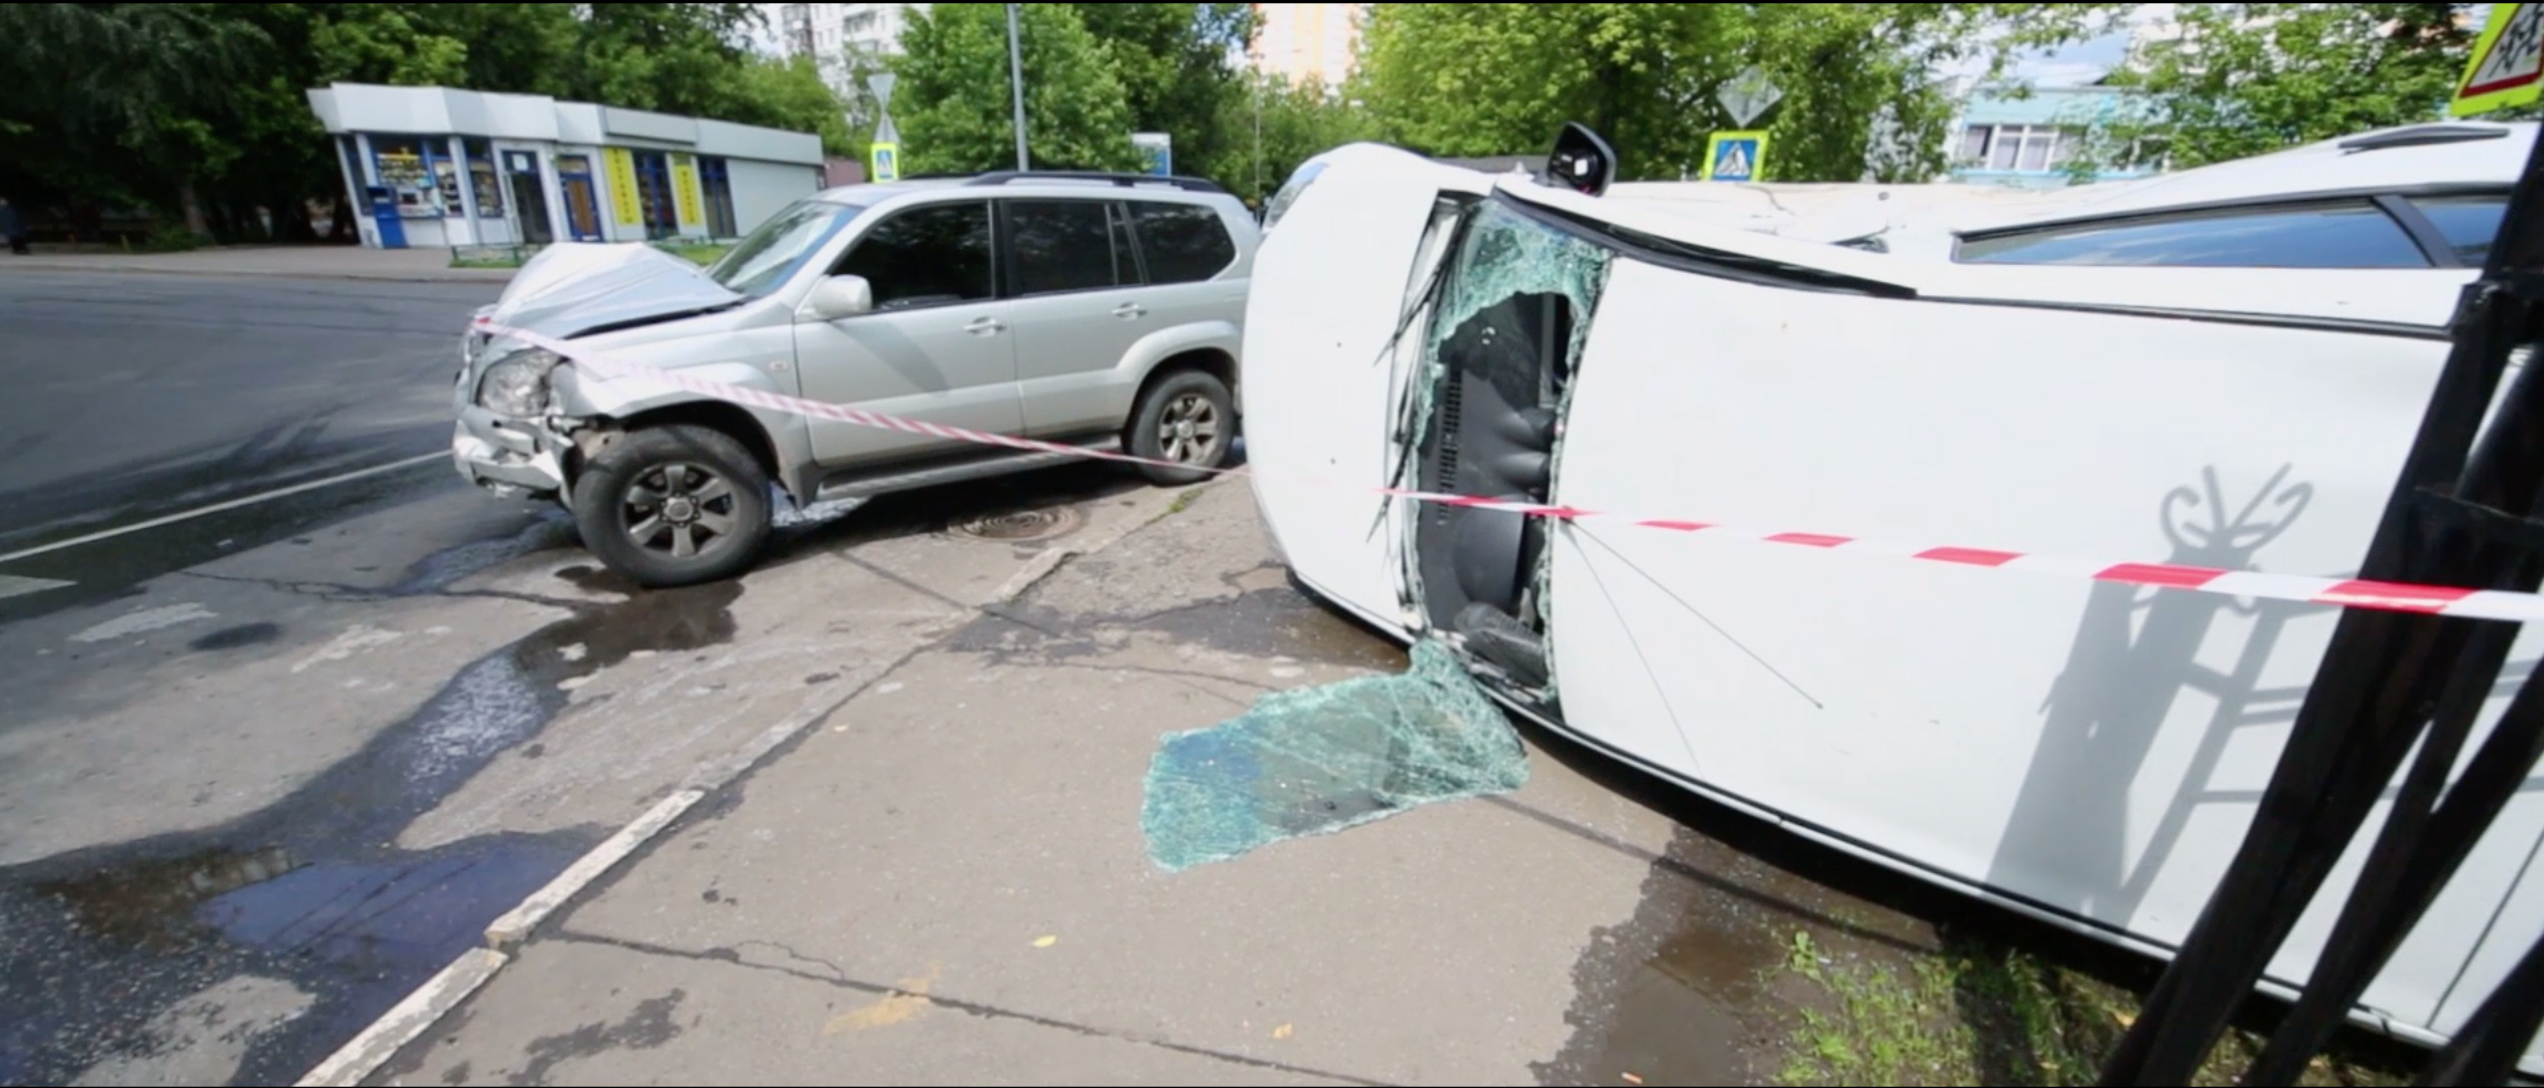 Is The Owner or Driver Liable in a Car Accident?